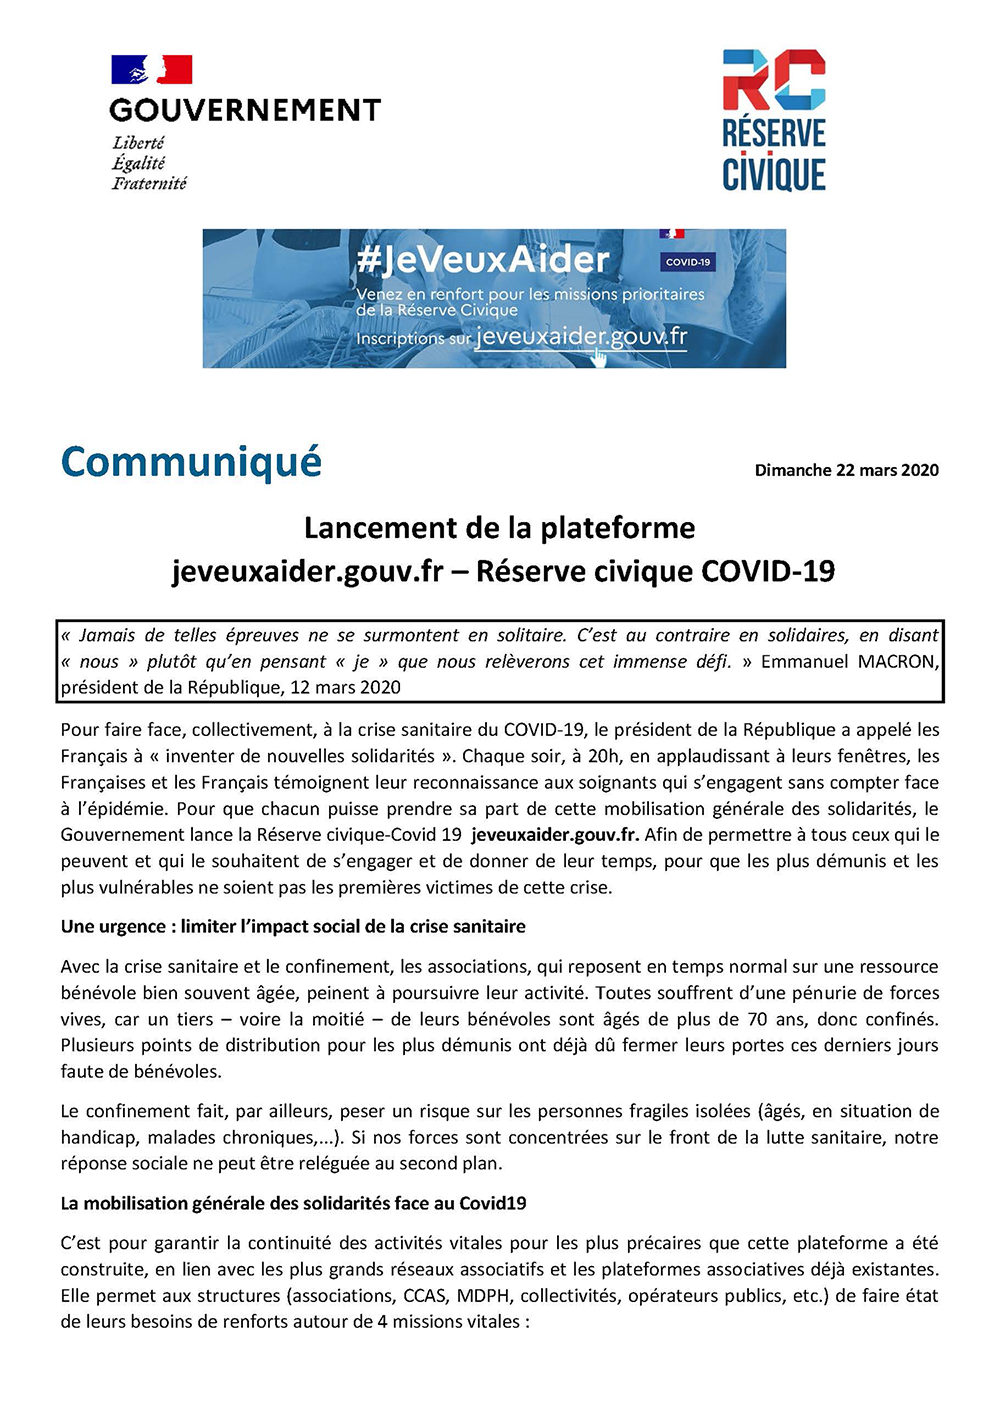 CP 22032020 lancement_plateforme_jeveuxaider.gouv.fr-1_Page_1